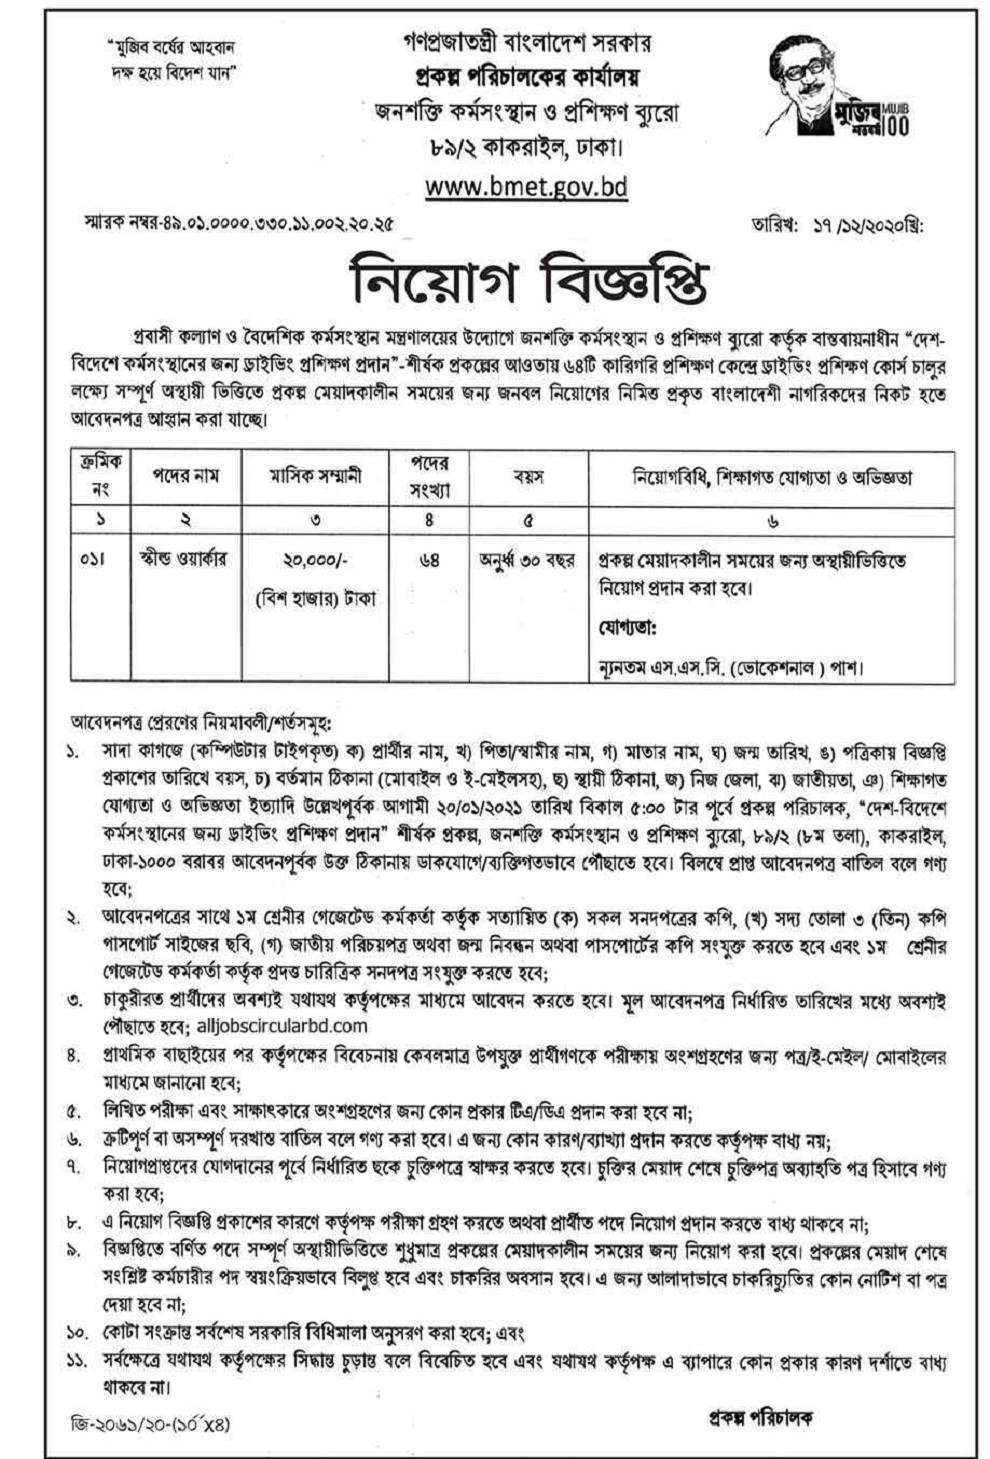 Bureau of Manpower Employment and Training Job Circular